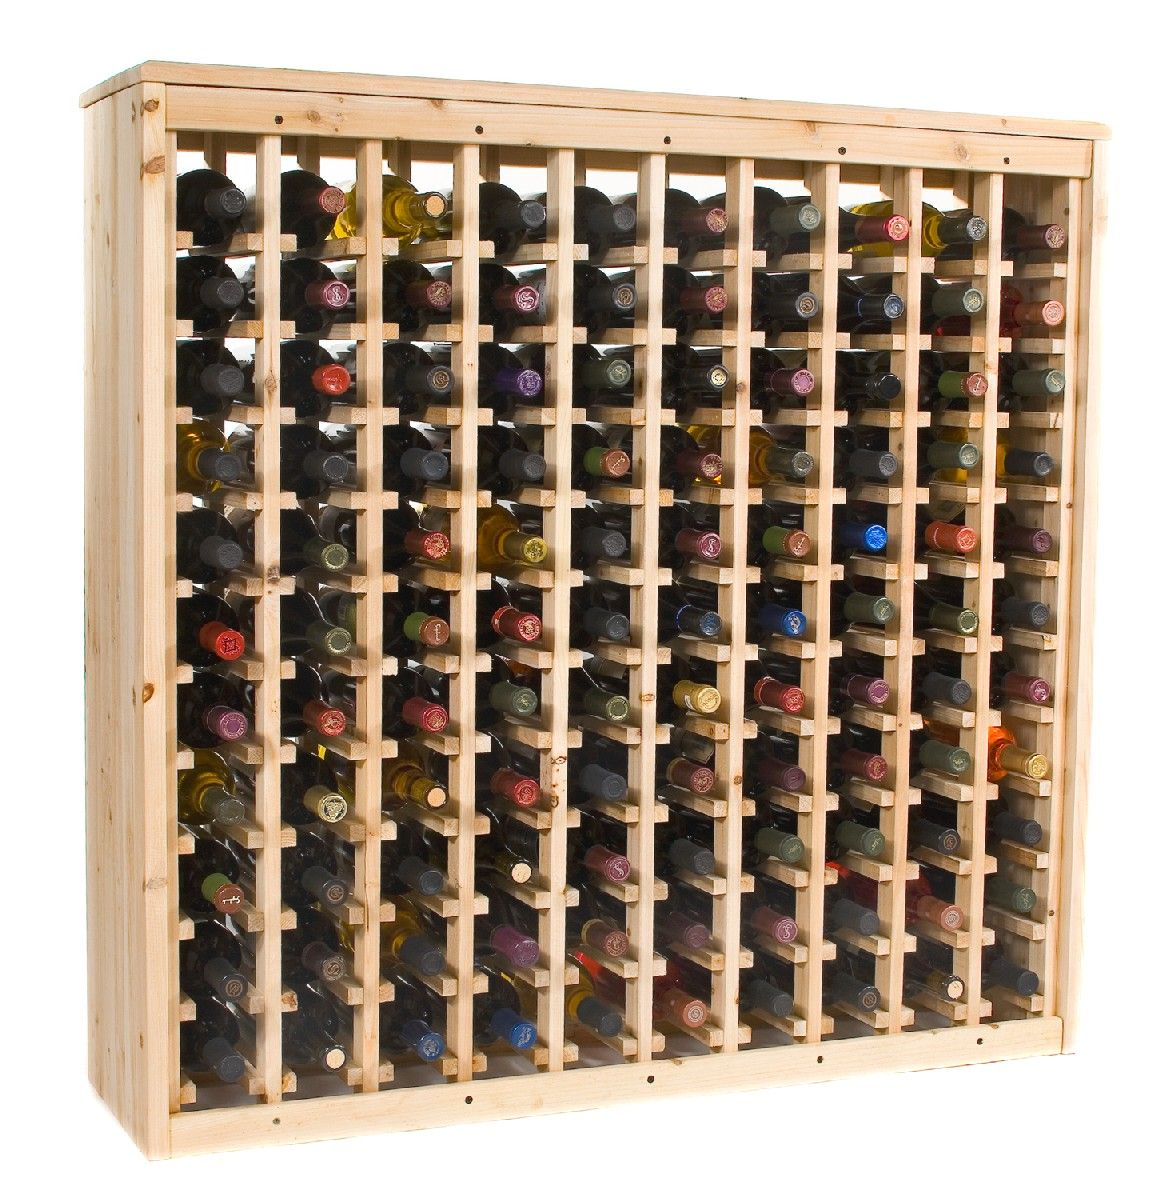 Simple Wine Rack Plans Plans Free Download | Wine rack plans, Wine ...